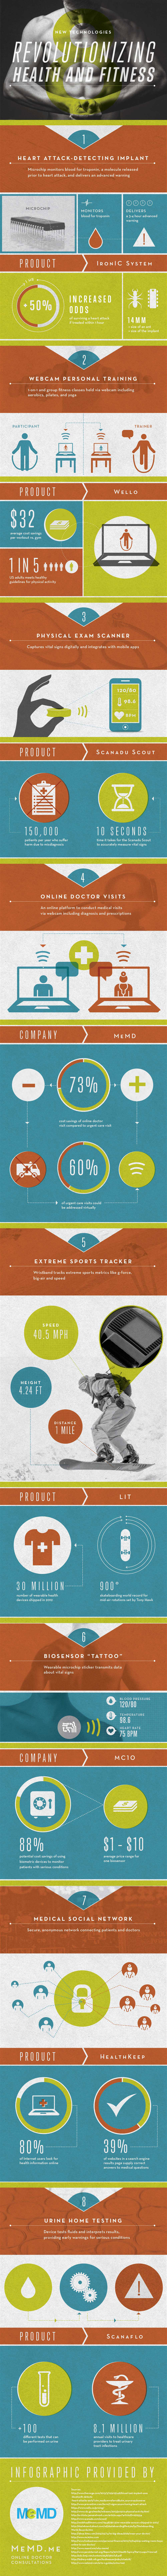 8 New Technologies That Can Help You Live A Longer Life [Infographic]